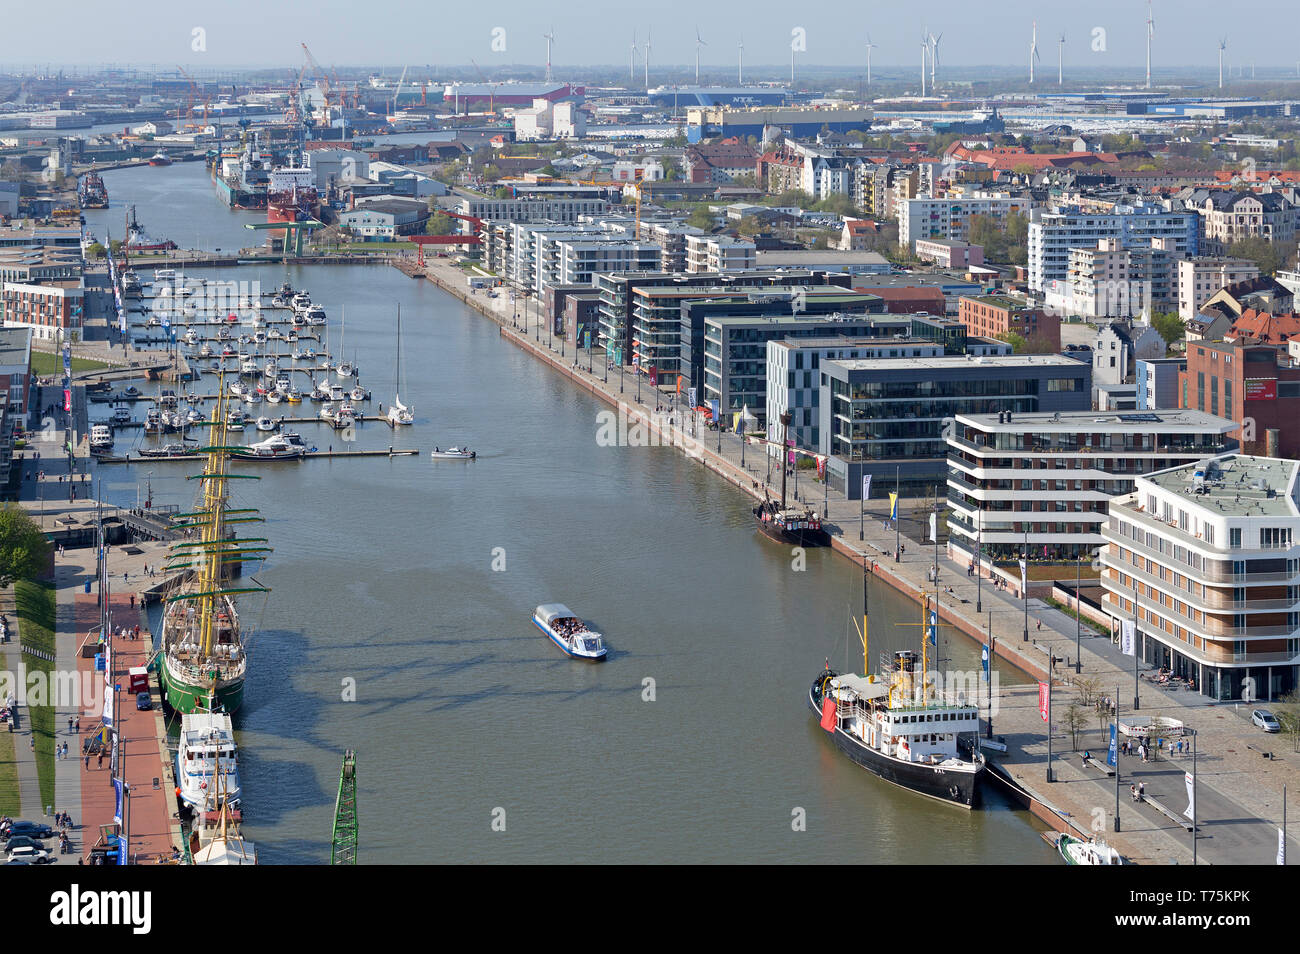 view of New Harbour from the viewing platform of ATLANTIC Hotel Sail City, Bremerhaven, Bremen, Germany - Stock Image